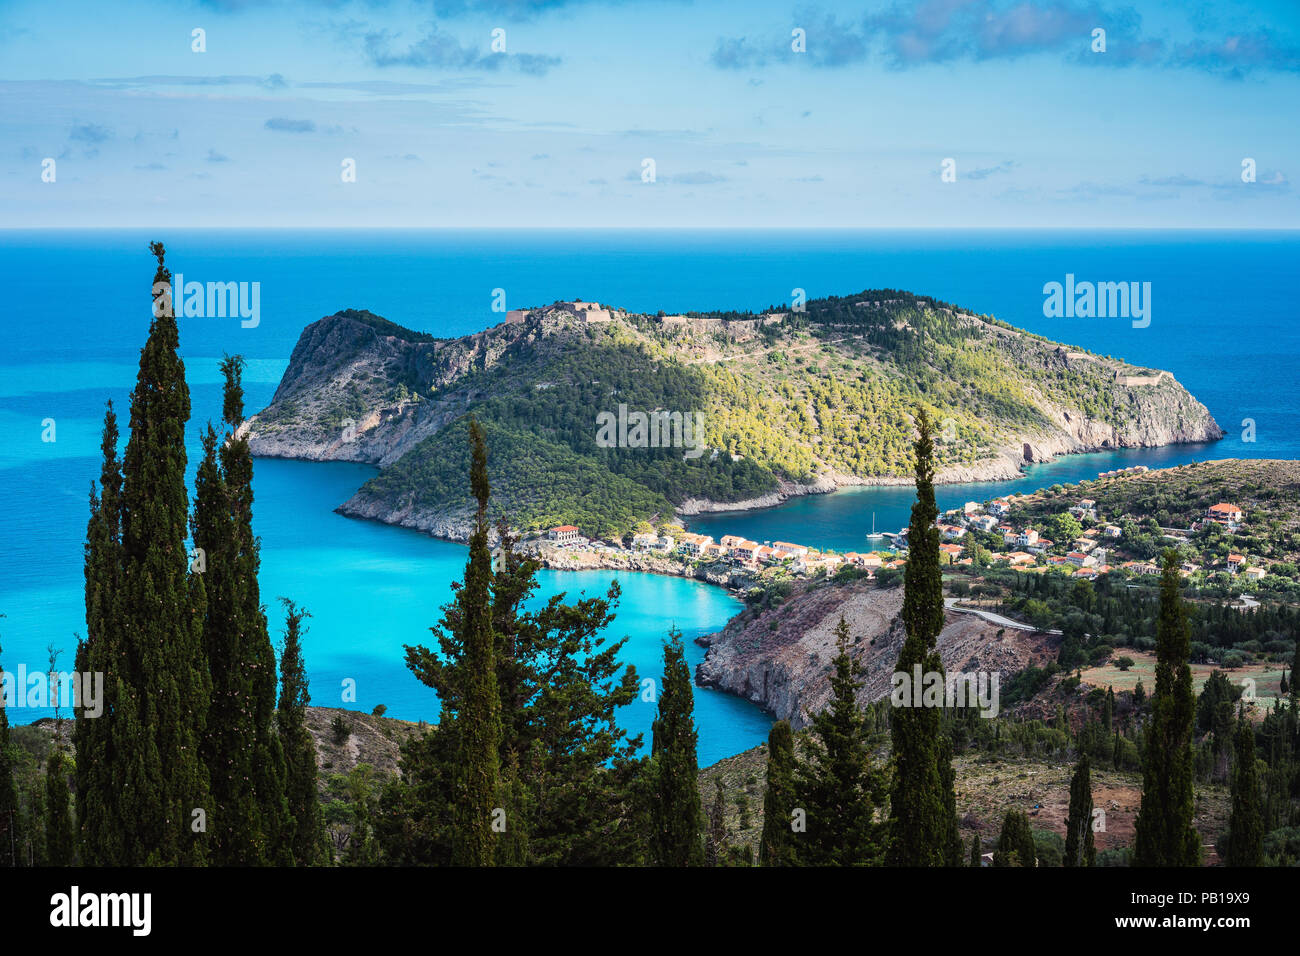 View to Assos village in sun light and beautiful blue sea. Cypress trees in foreground. Kefalonia island, Greece - Stock Image